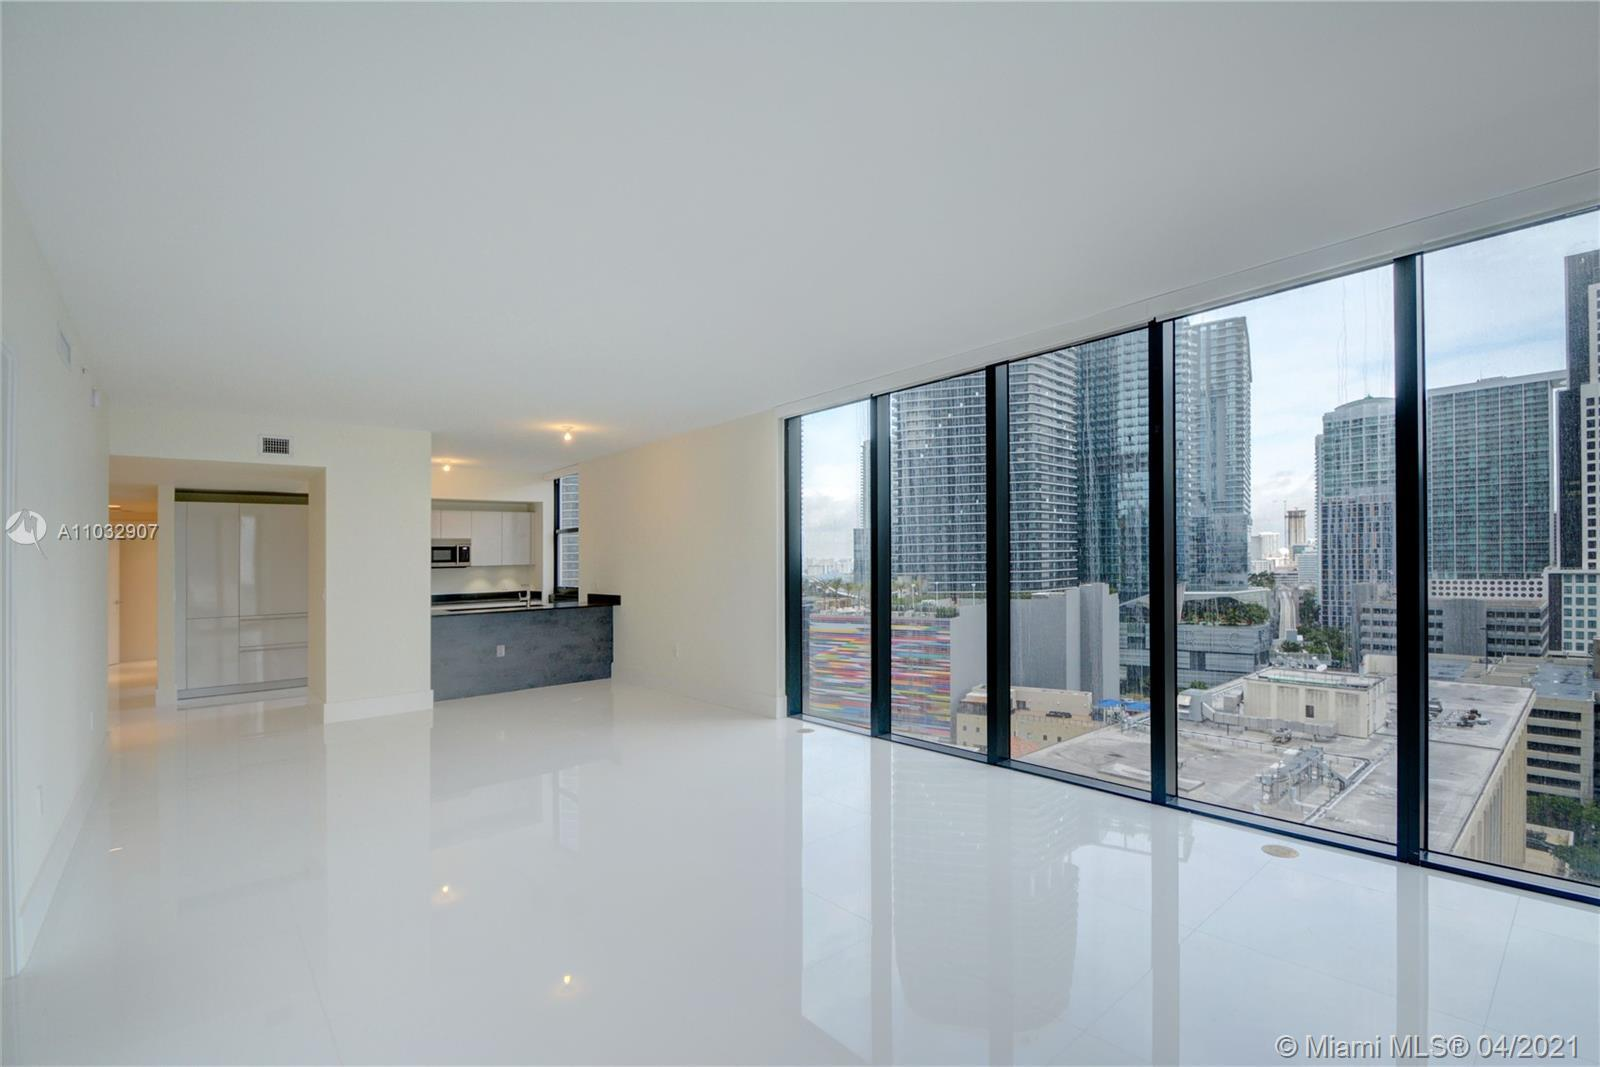 1010 BRICKELL OFFERS STATE OF THE ART AMENITIES FOR ALL AGES: POOL DECK AND LOUNGE, FITNESS CENTER,